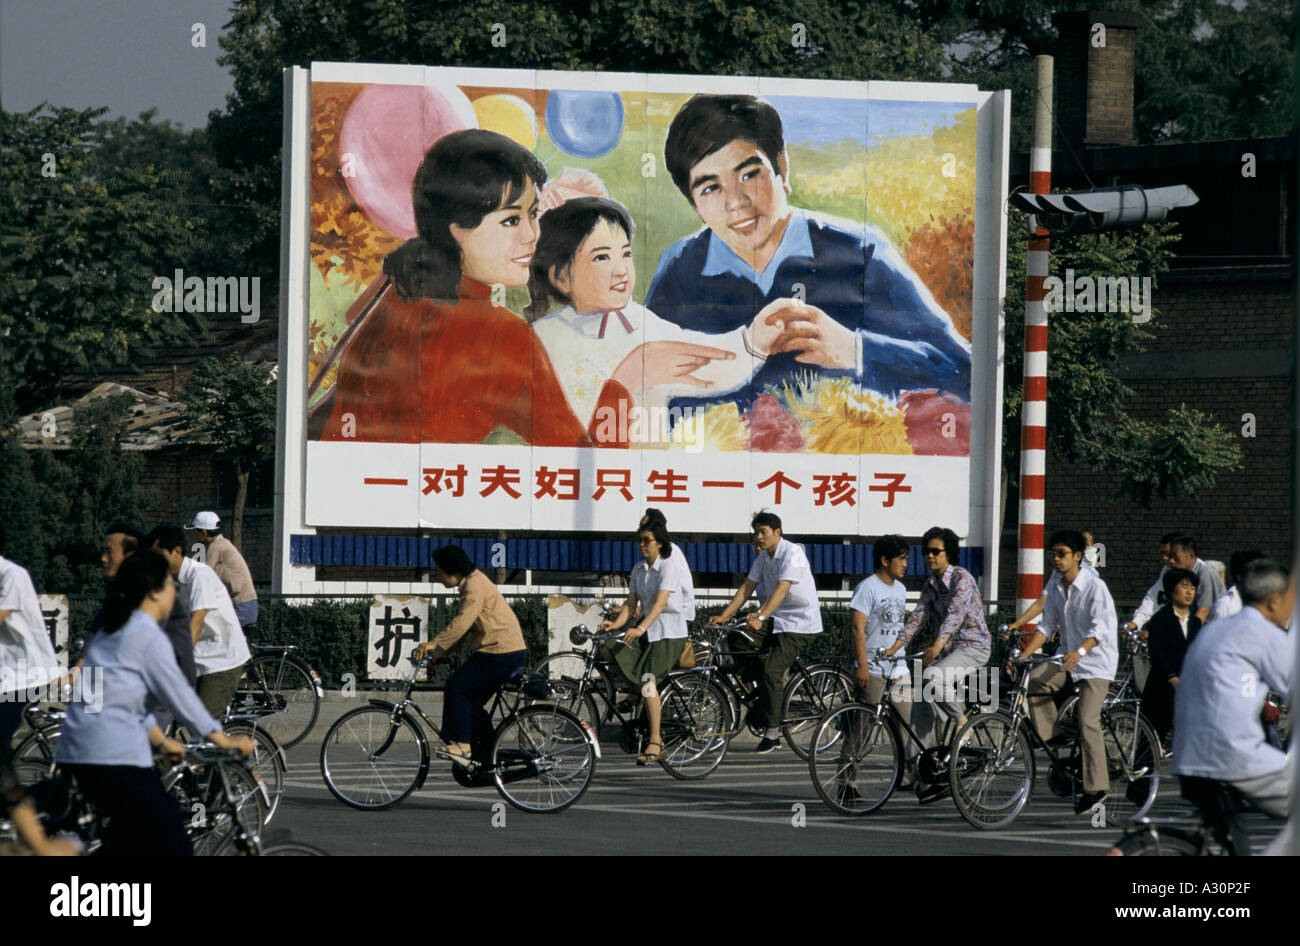 Billboard promoting one child policy in China - Stock Image